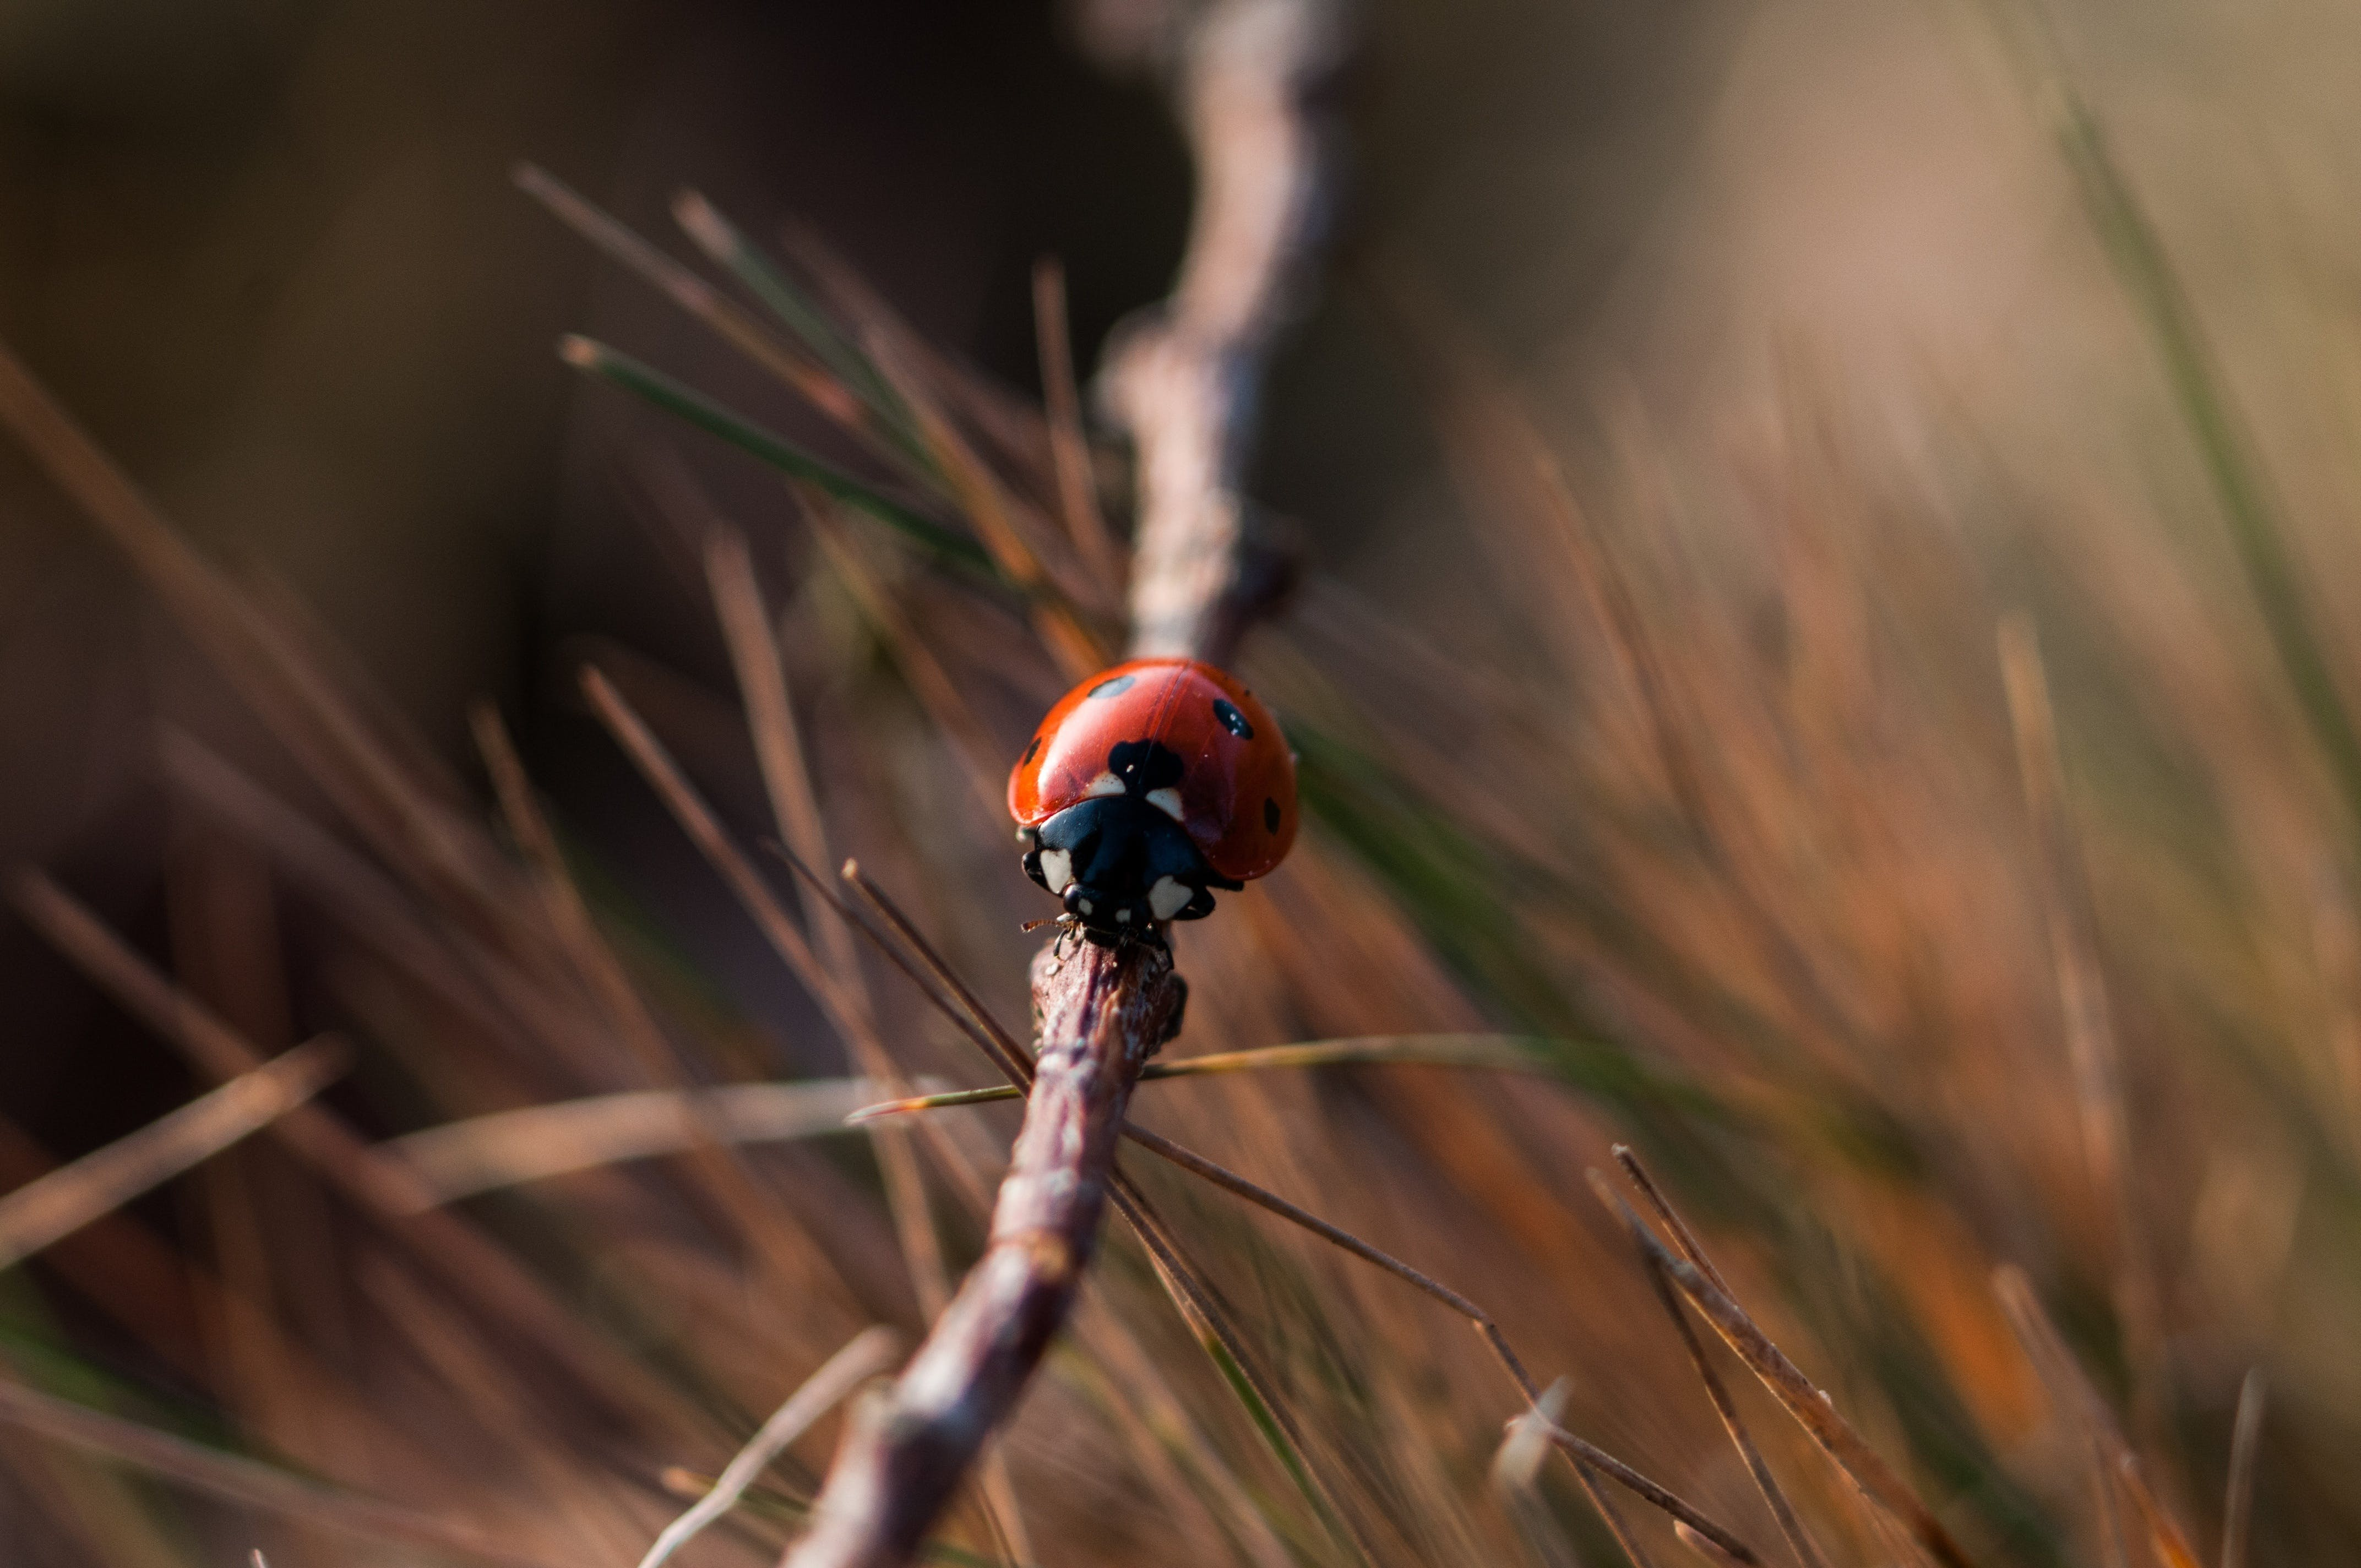 Red Seven Spotted Ladybird Perched on Brown Tree Branch in Close Up Photography During Daytime